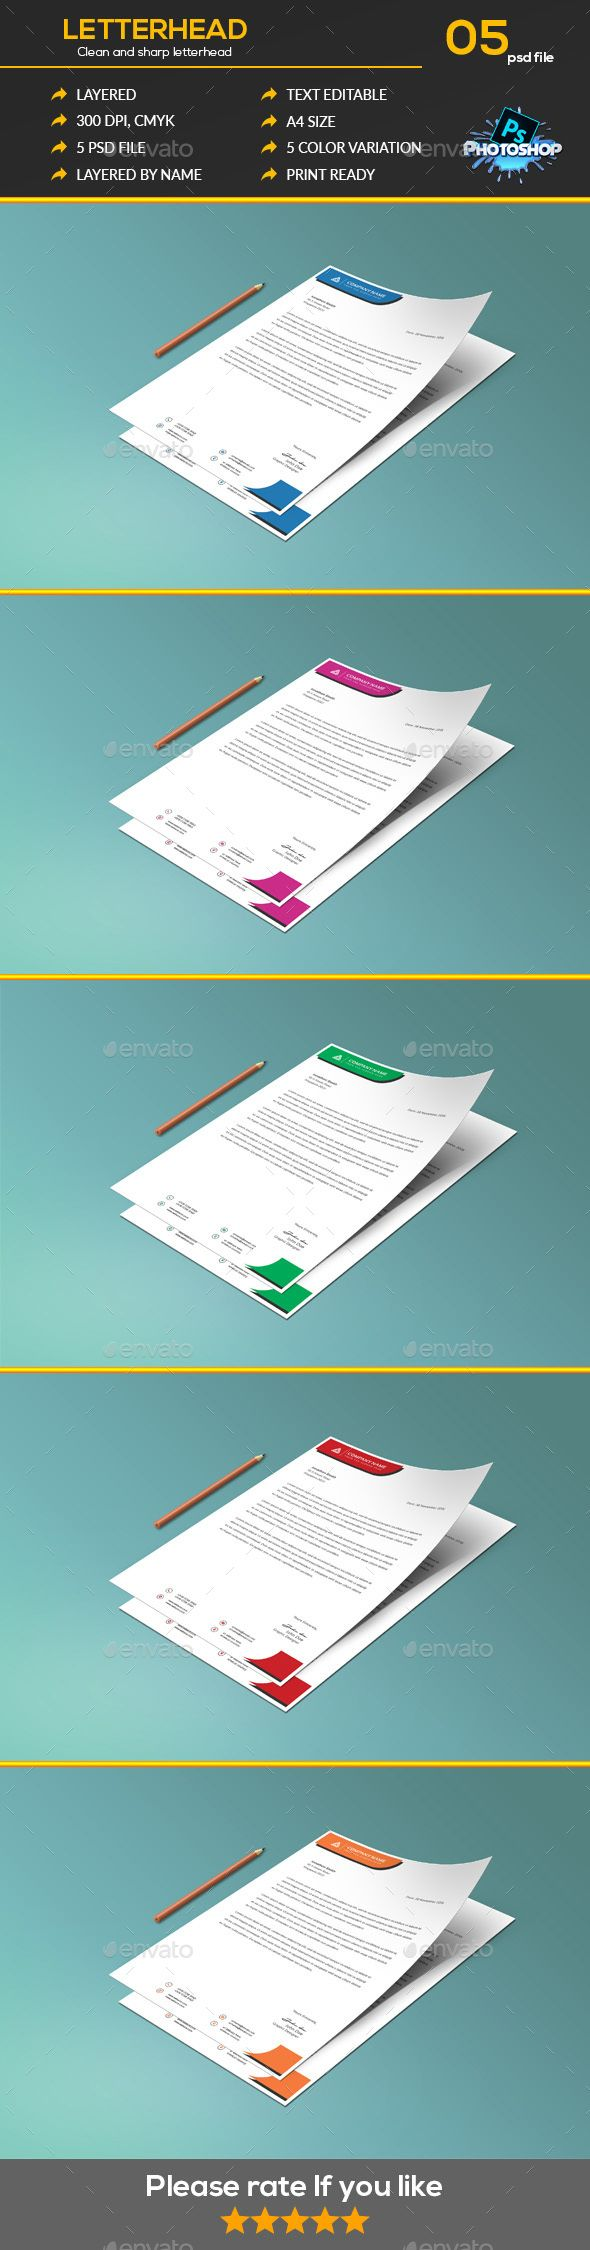 letter format on letterhead%0A Buy Letter Head by DesignHouse on GraphicRiver  LETTERHEAD A simple unique  letterhead for all kind of business and personal purpose usages